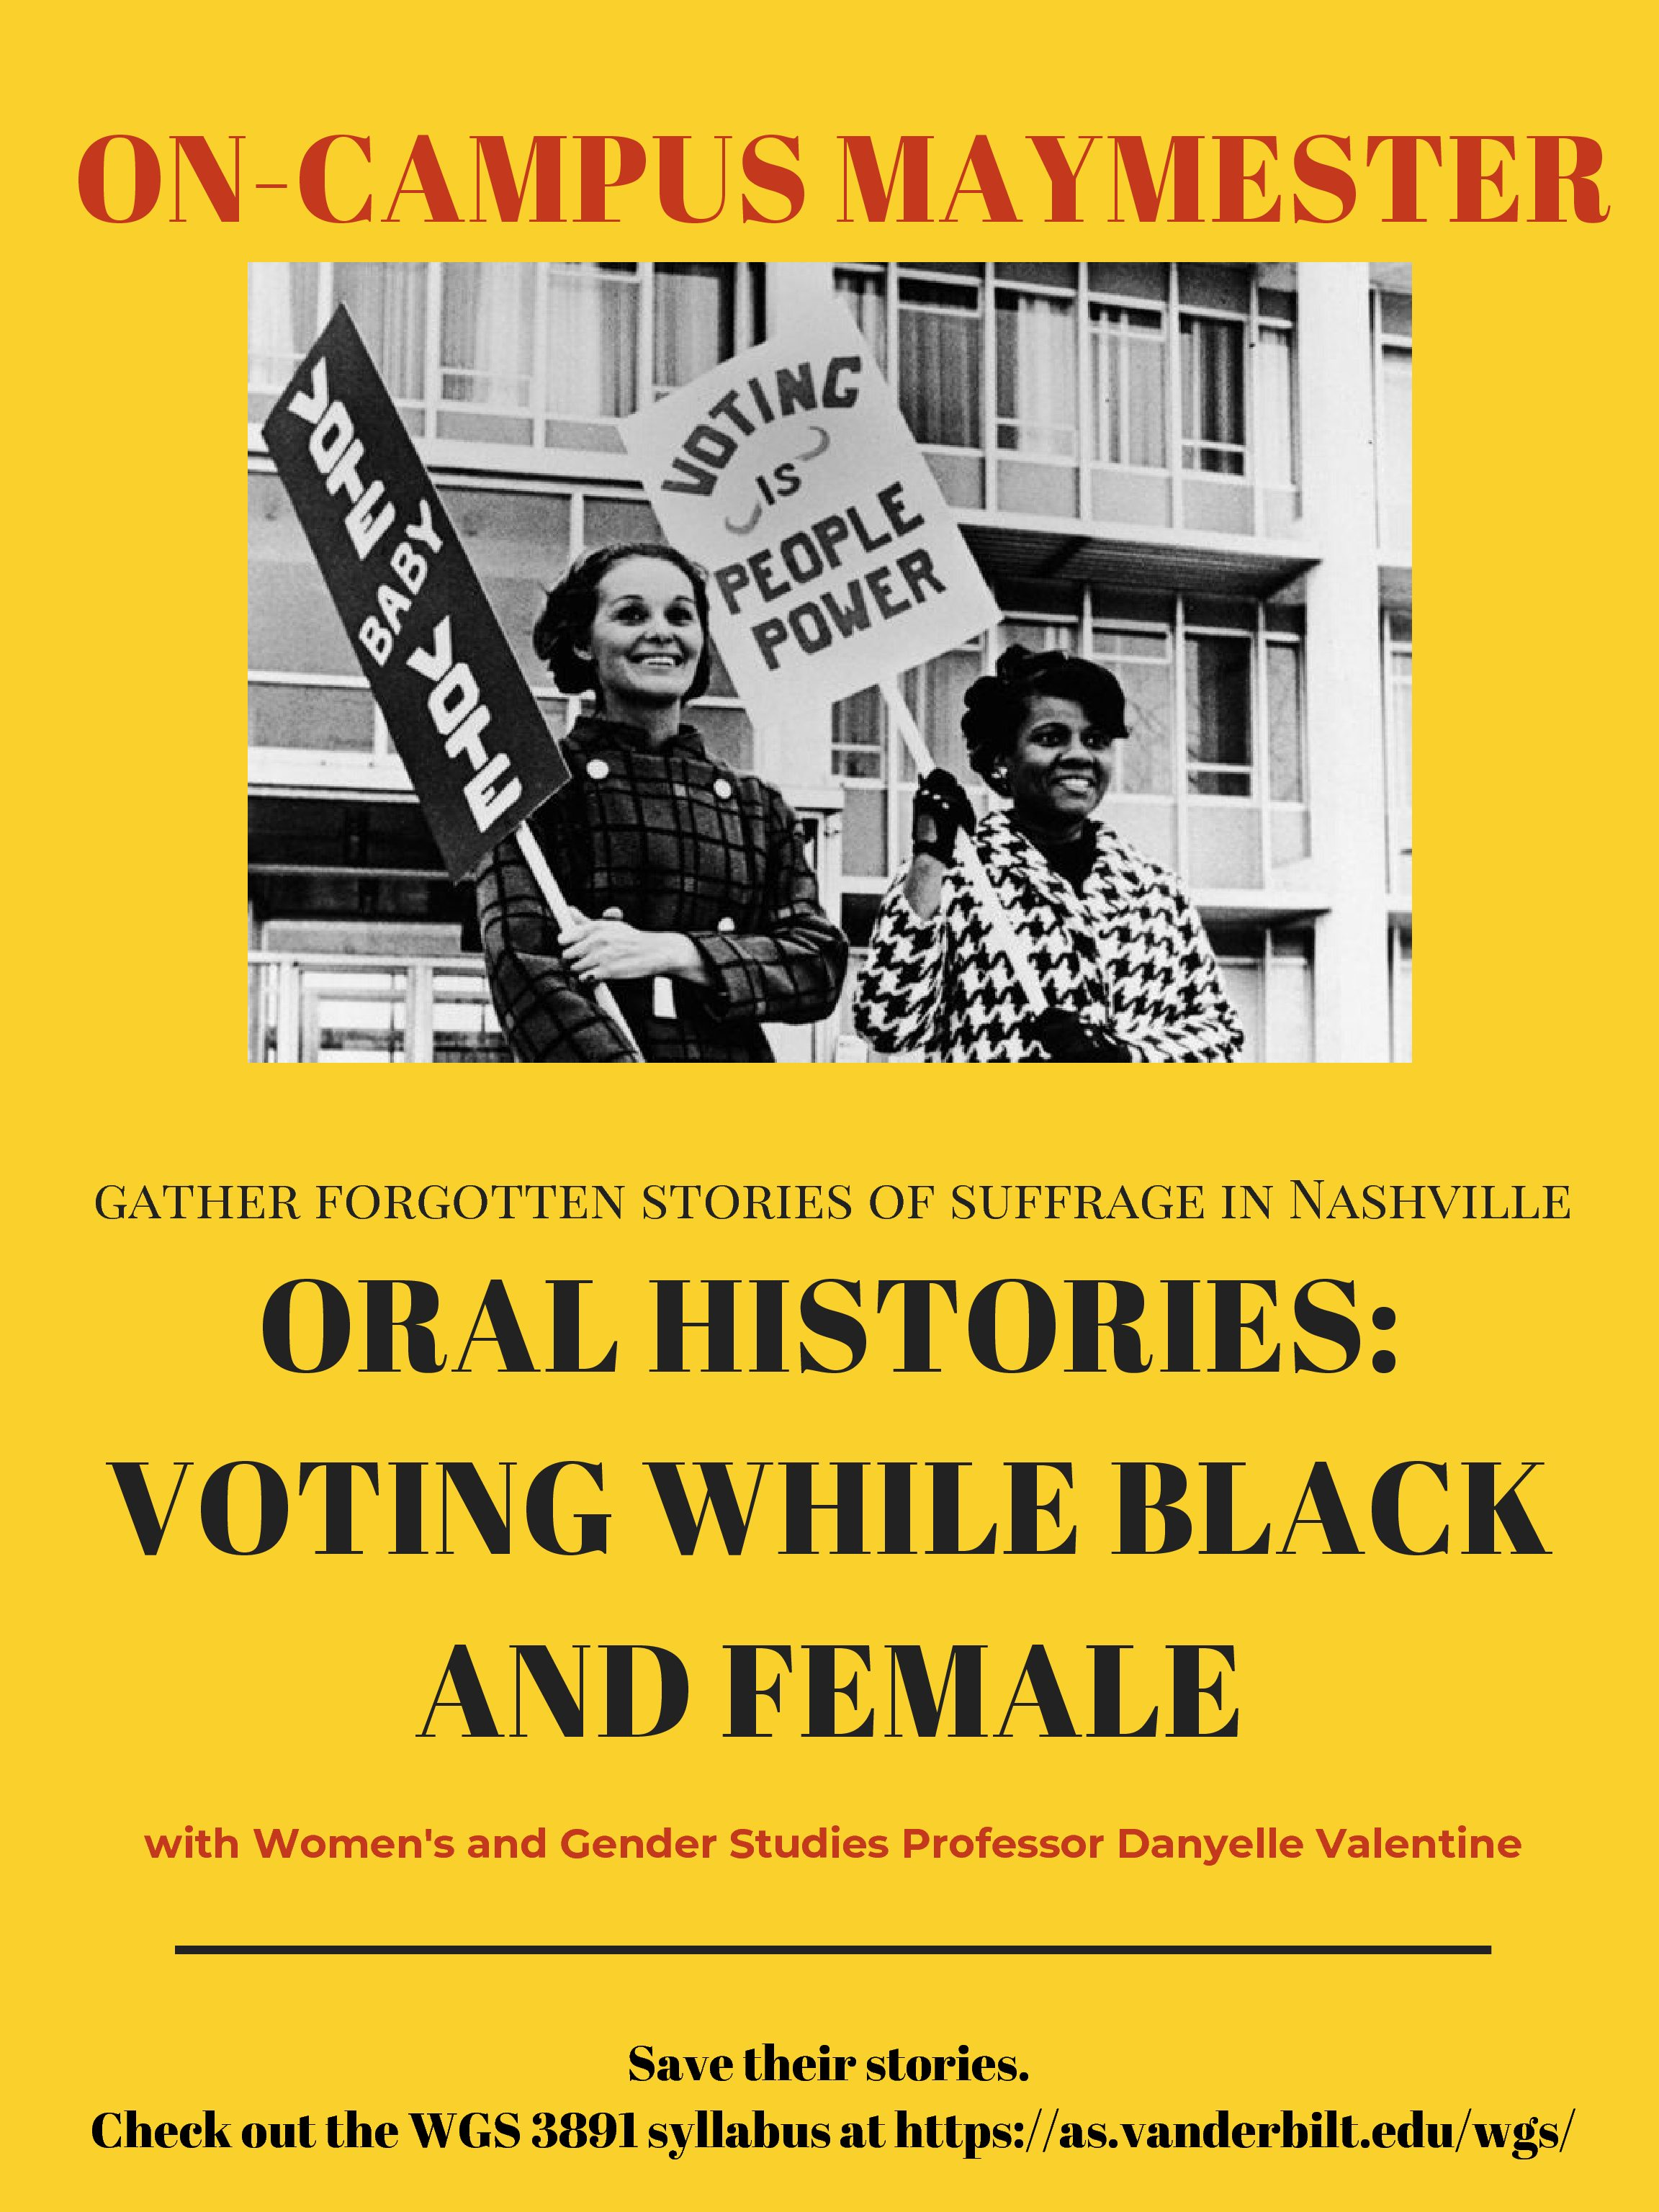 Maymester 2020 Oral Histories: Voting While Black and Female